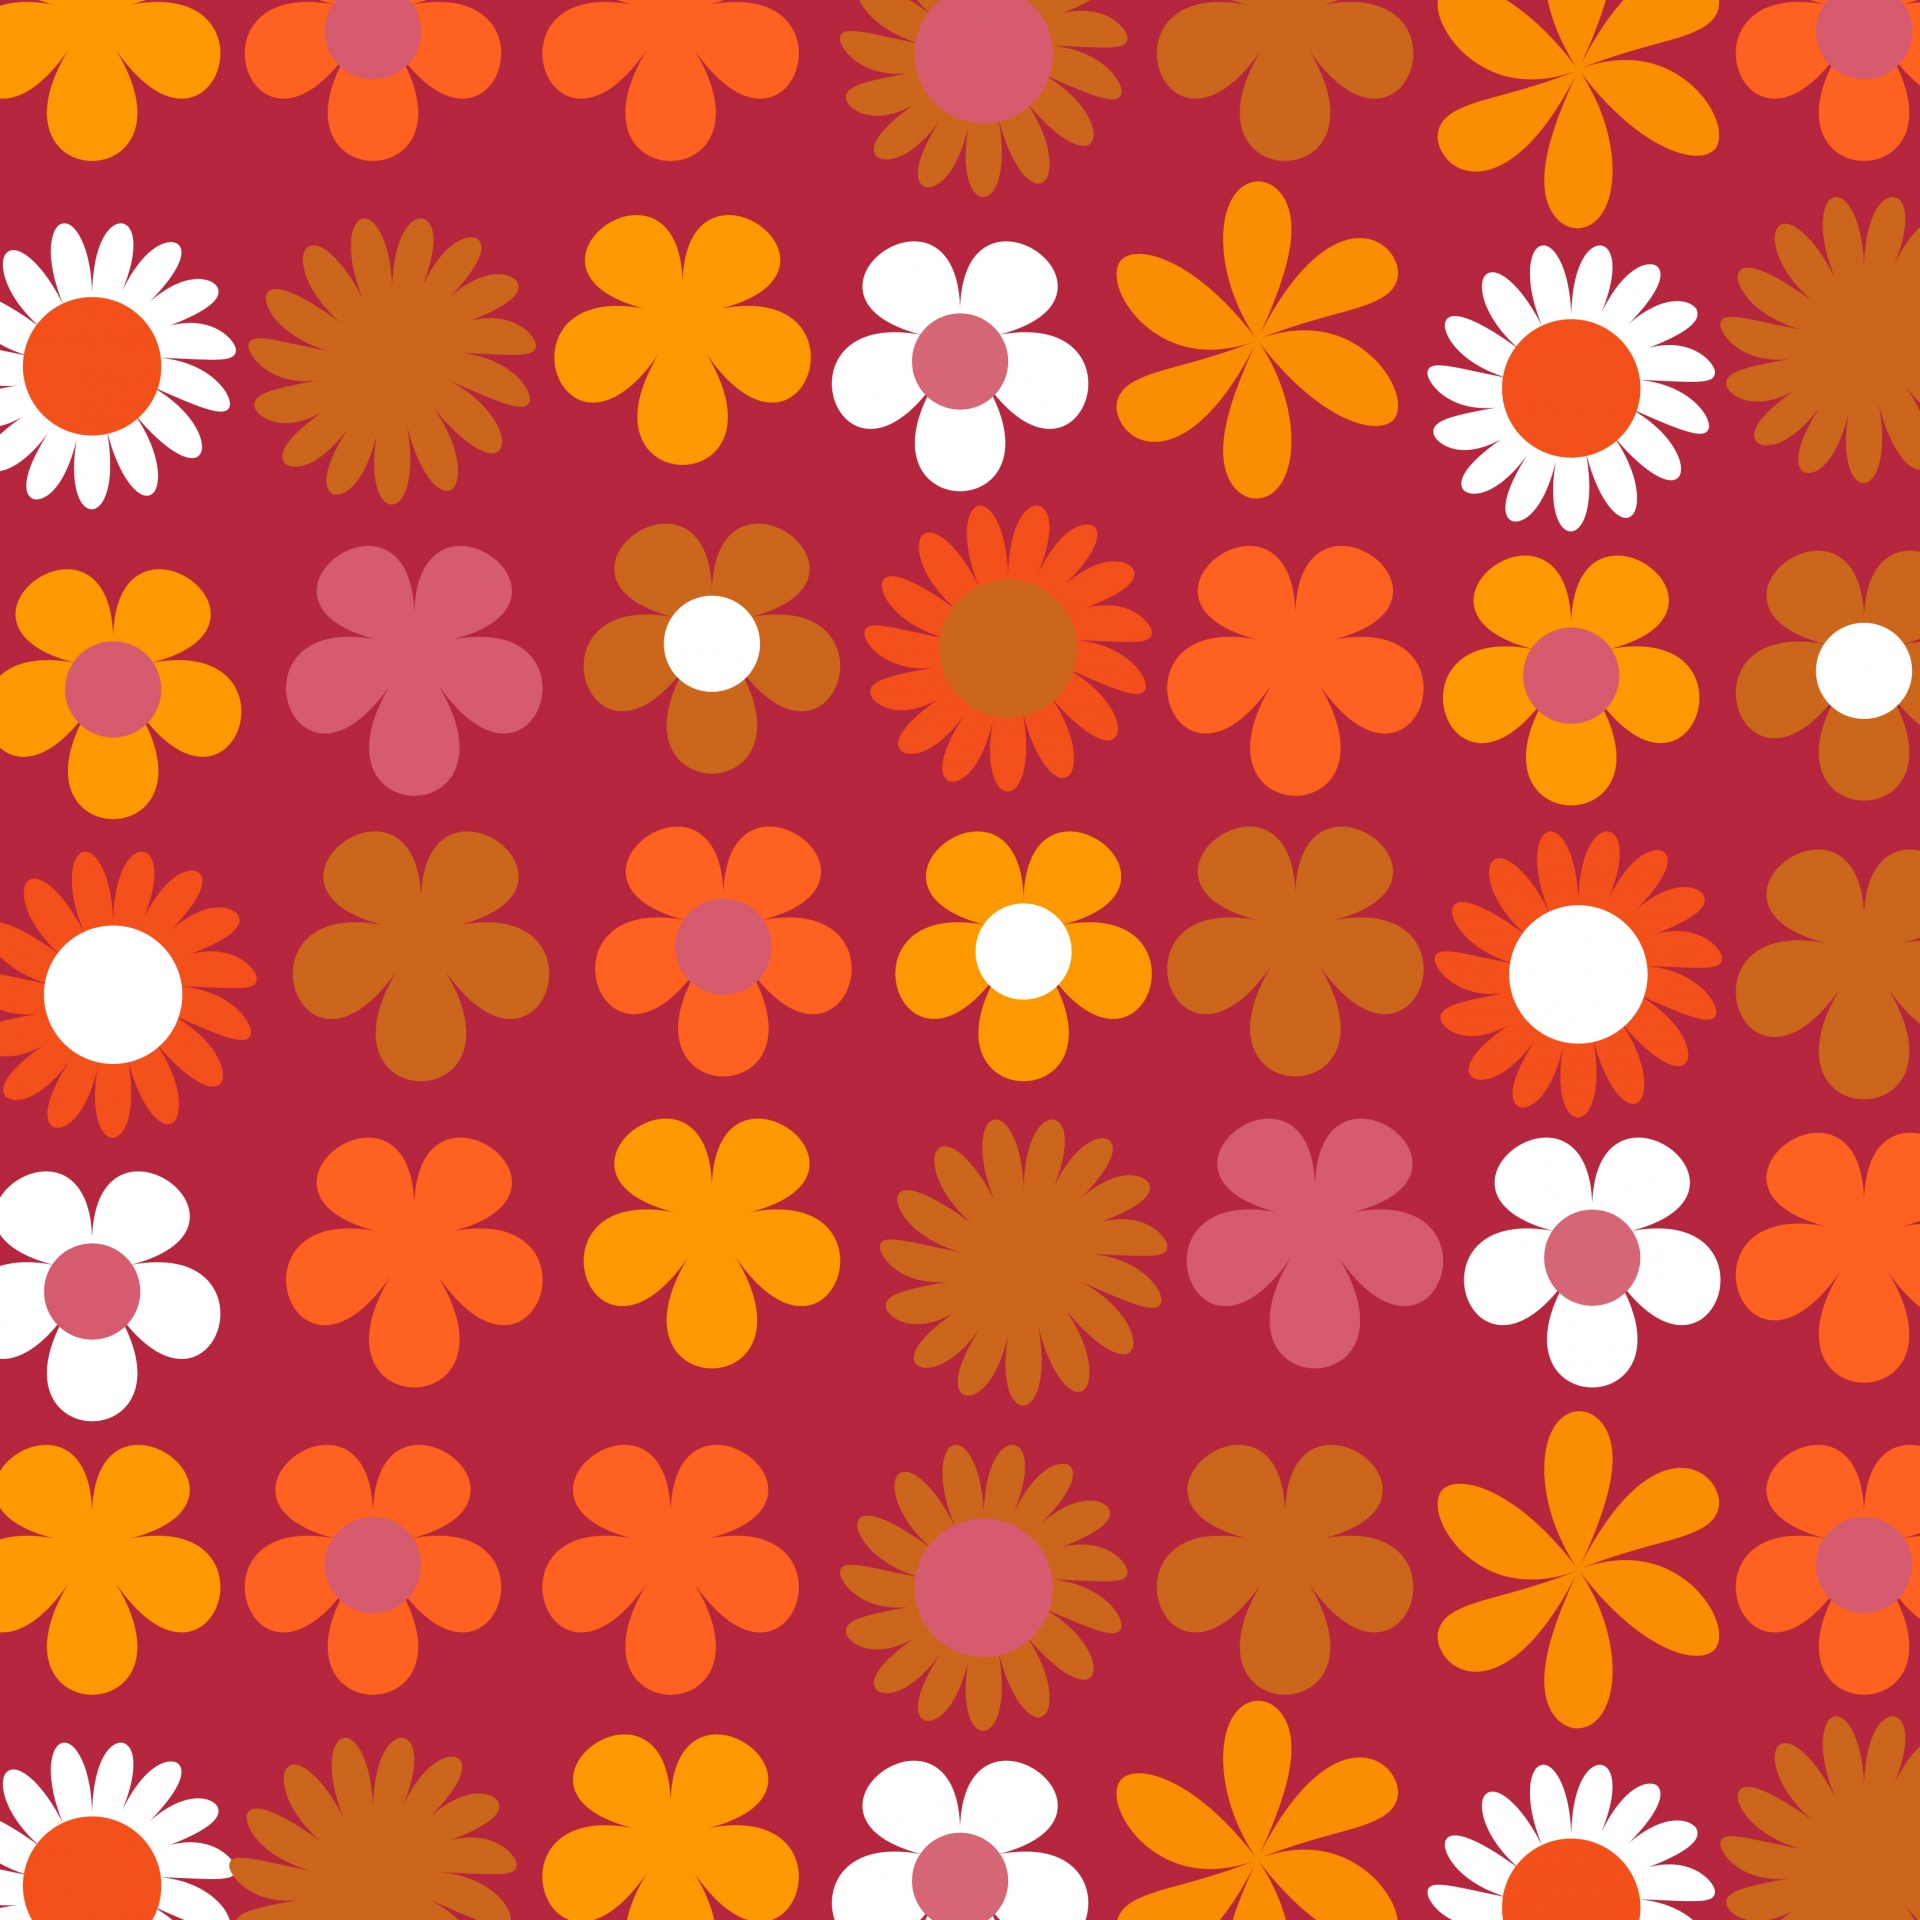 Download Free Photo Of Floral Retro 70s Seventies 1970s From